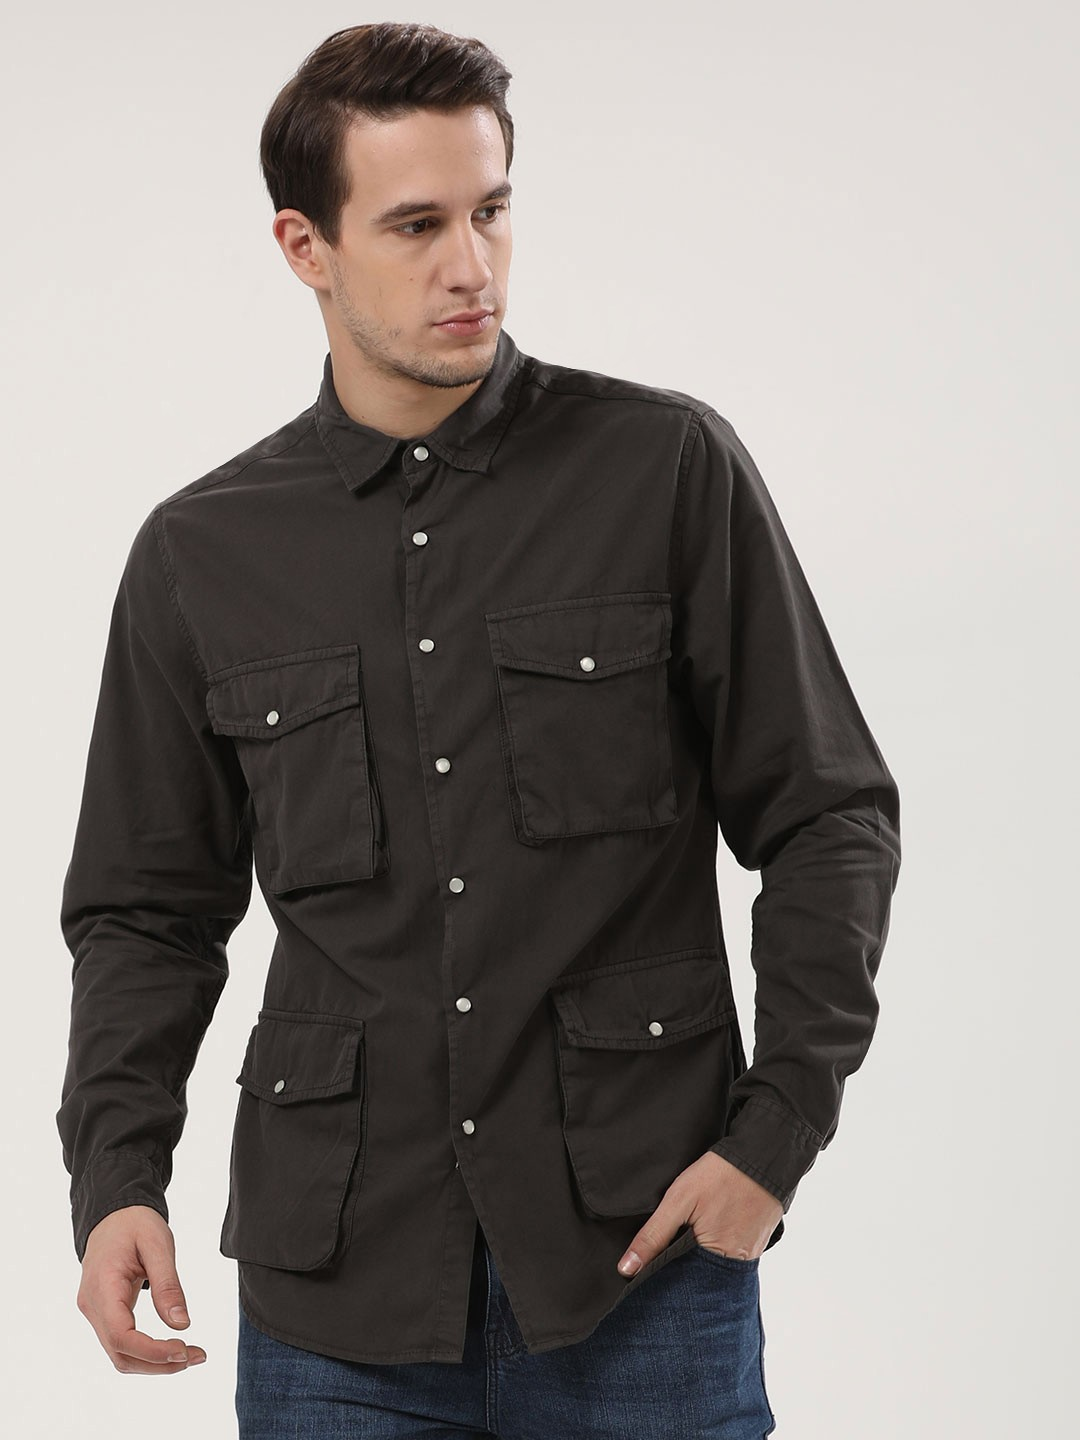 Blue Saint Grey Fothergill Patch Pocket Shirt 1